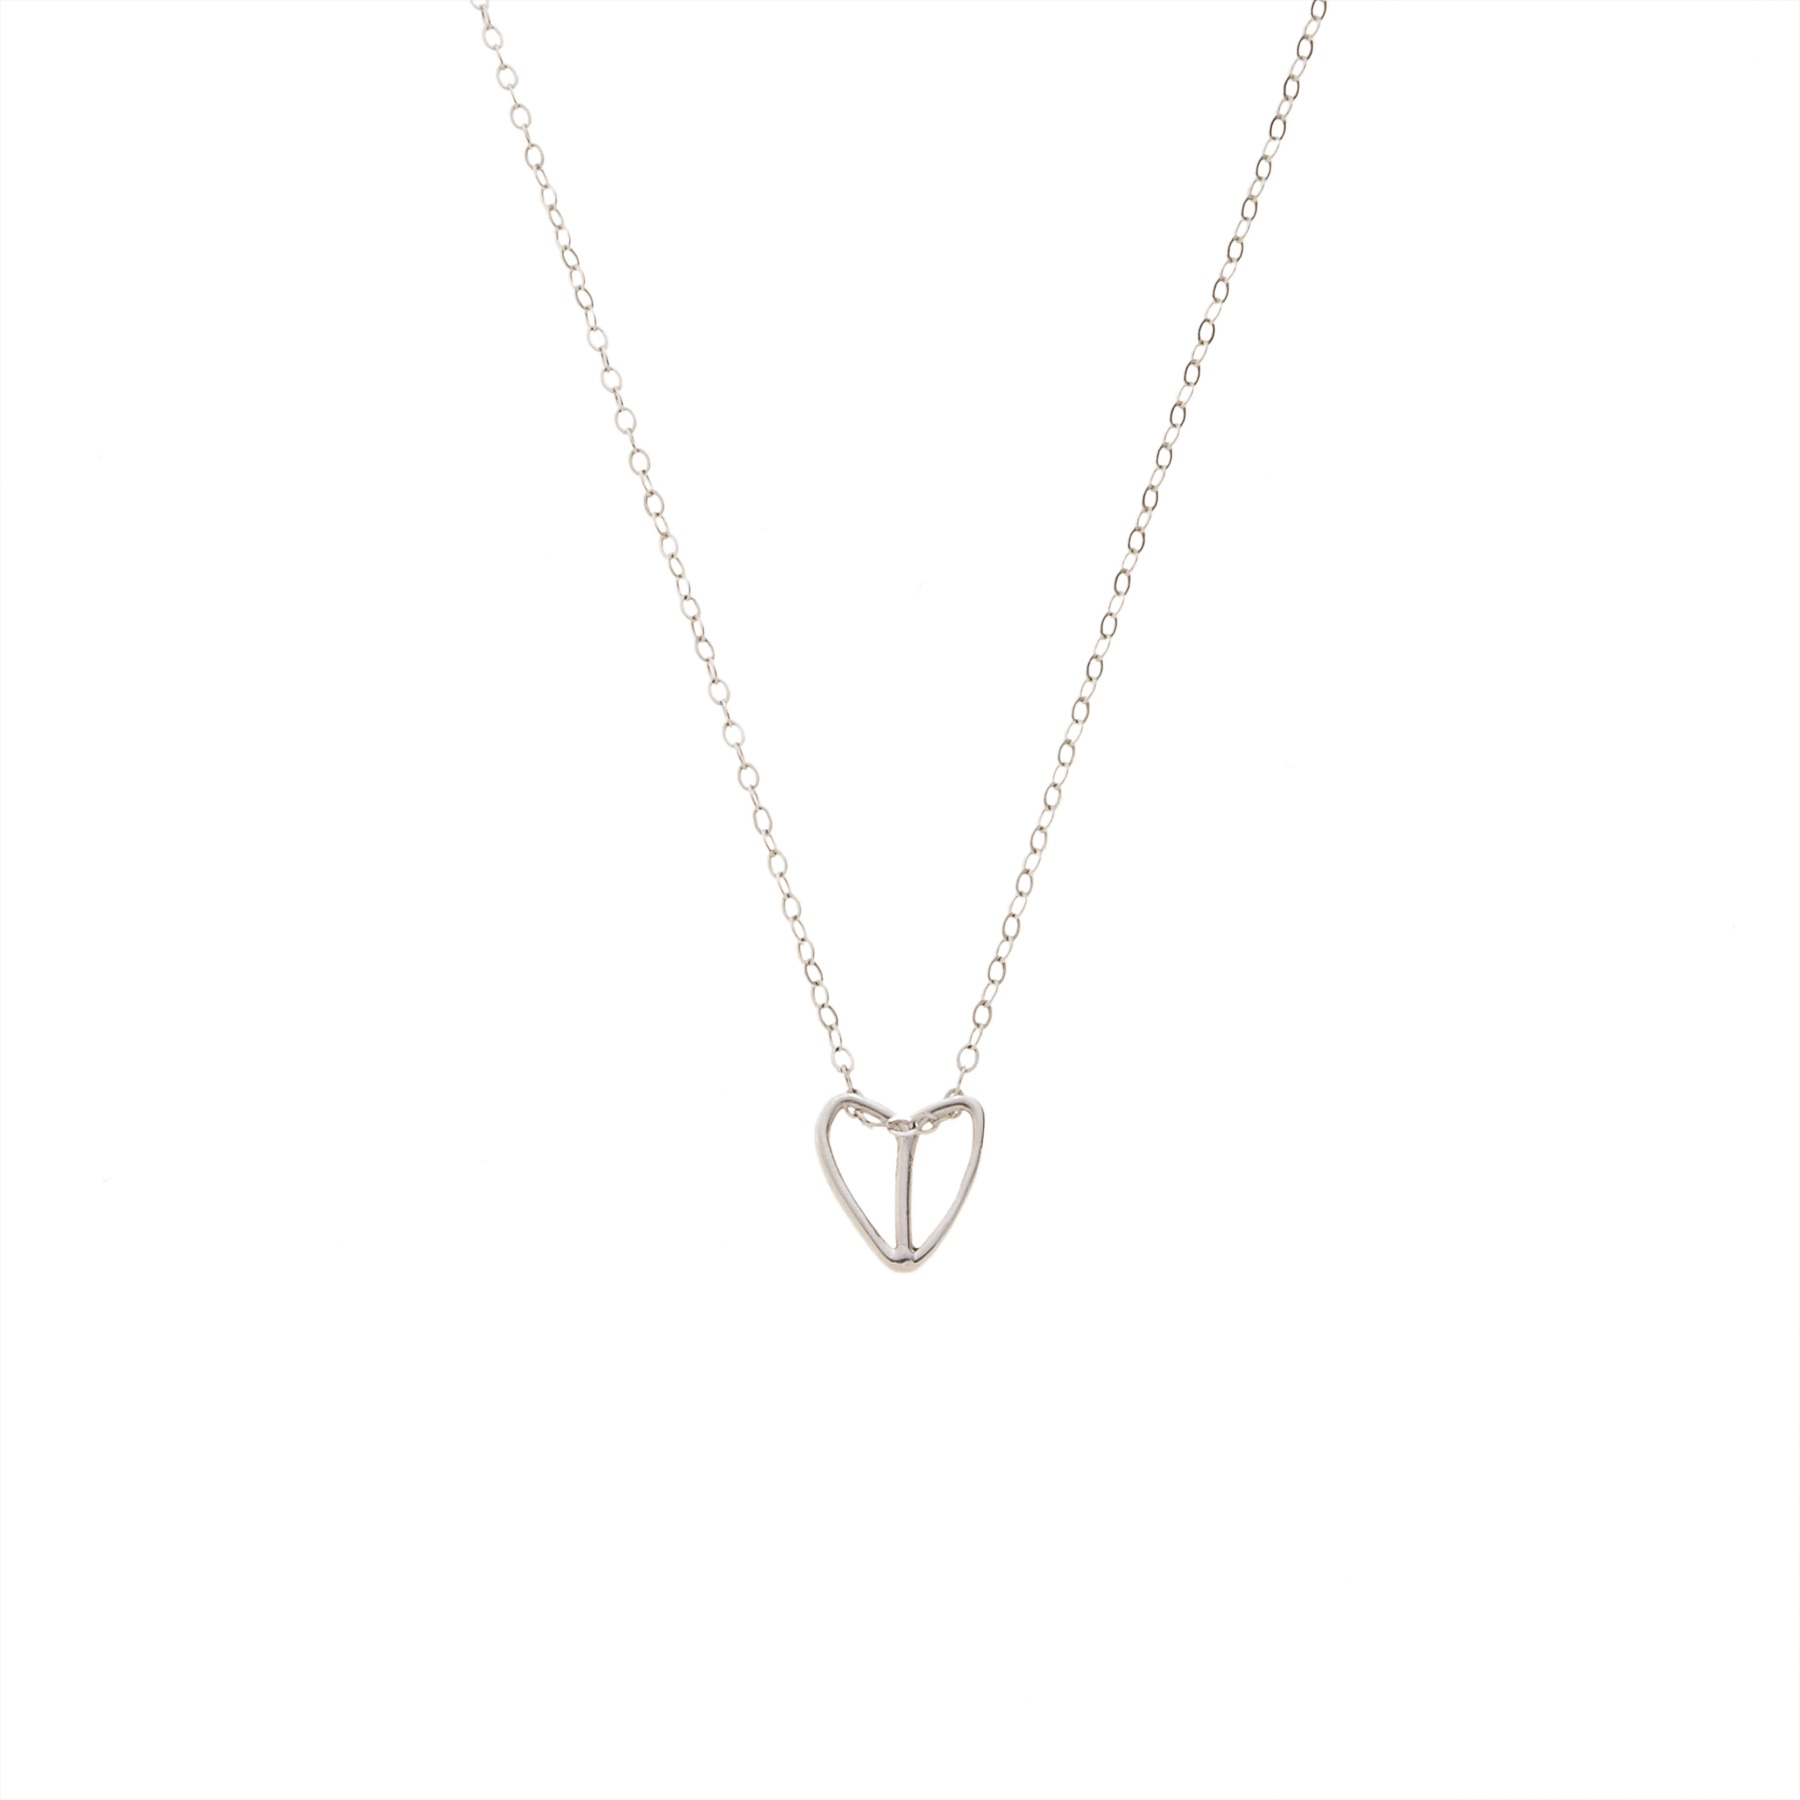 Skeleton Half Heart -Full Heart Charm, Sterling Silver, 2011